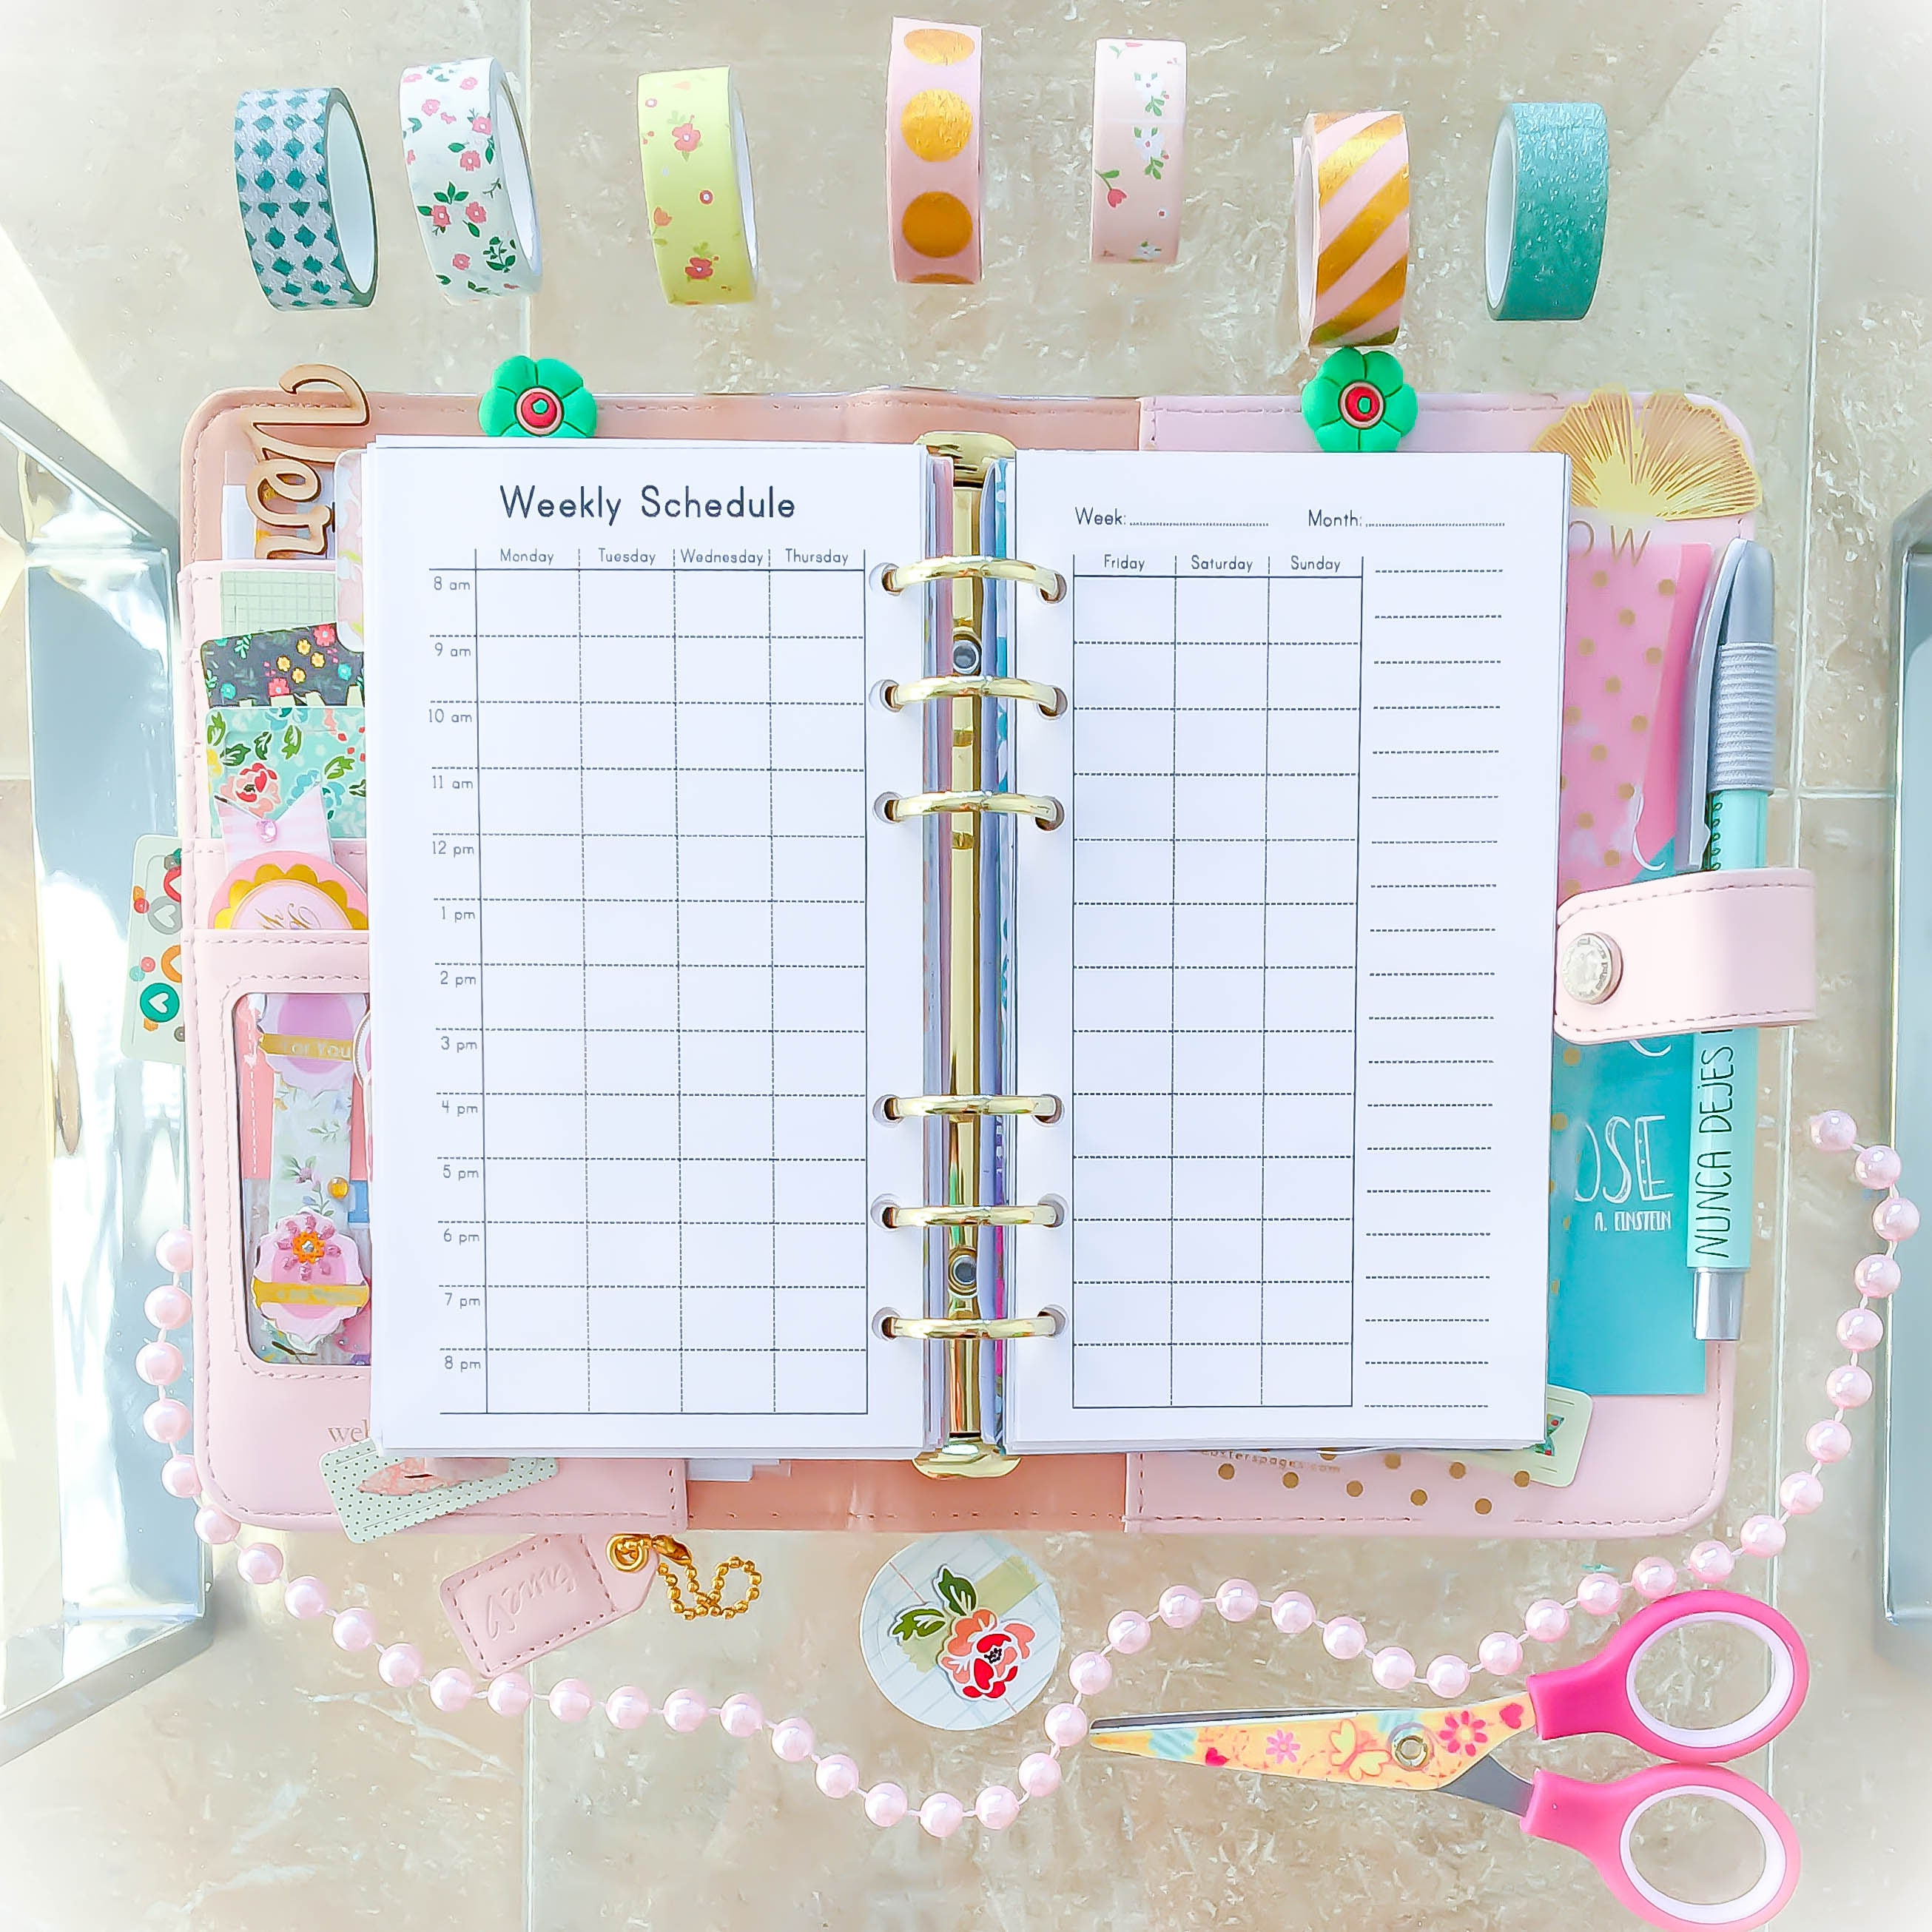 WEEKLY SCHEDULE Personal Size Filofax PDF 3 7x6 7 inches Weekly